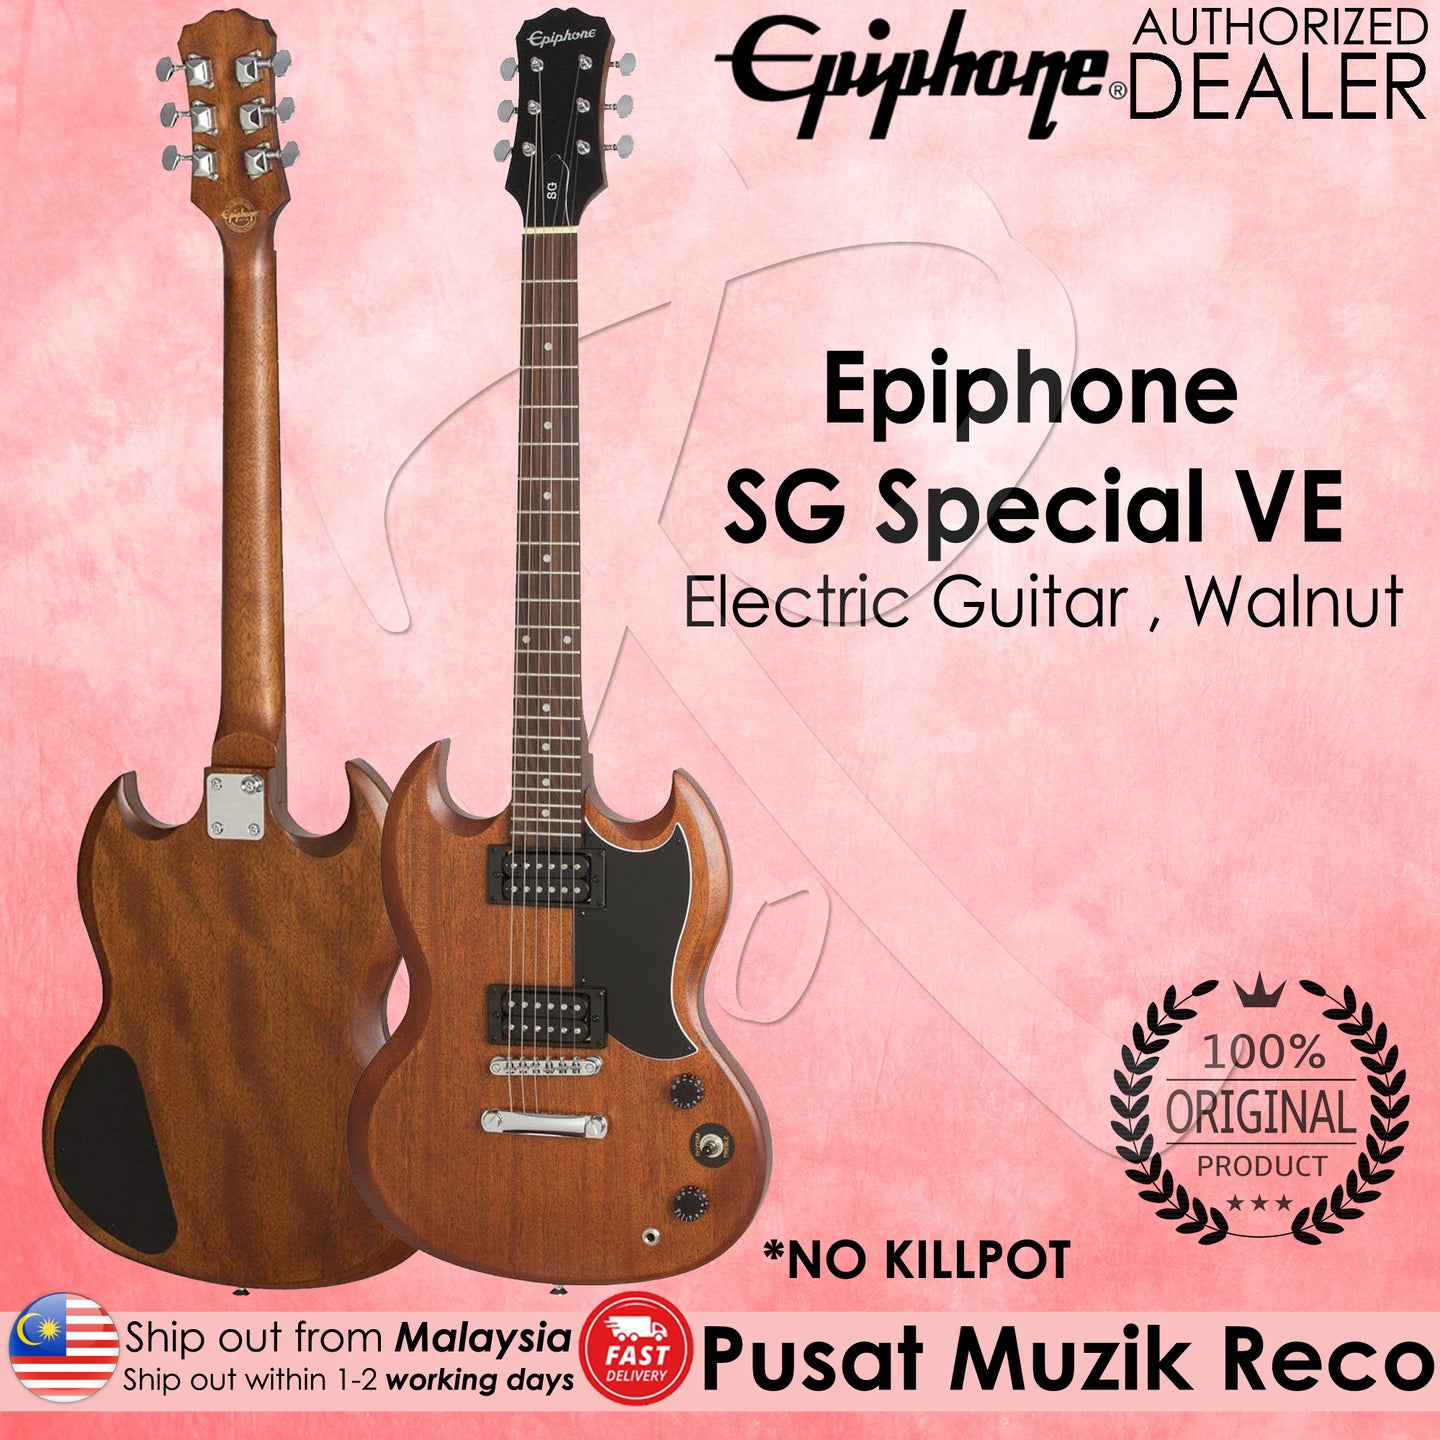 Epiphone SG Special VE Electric Guitar , Walnut | Recomusic